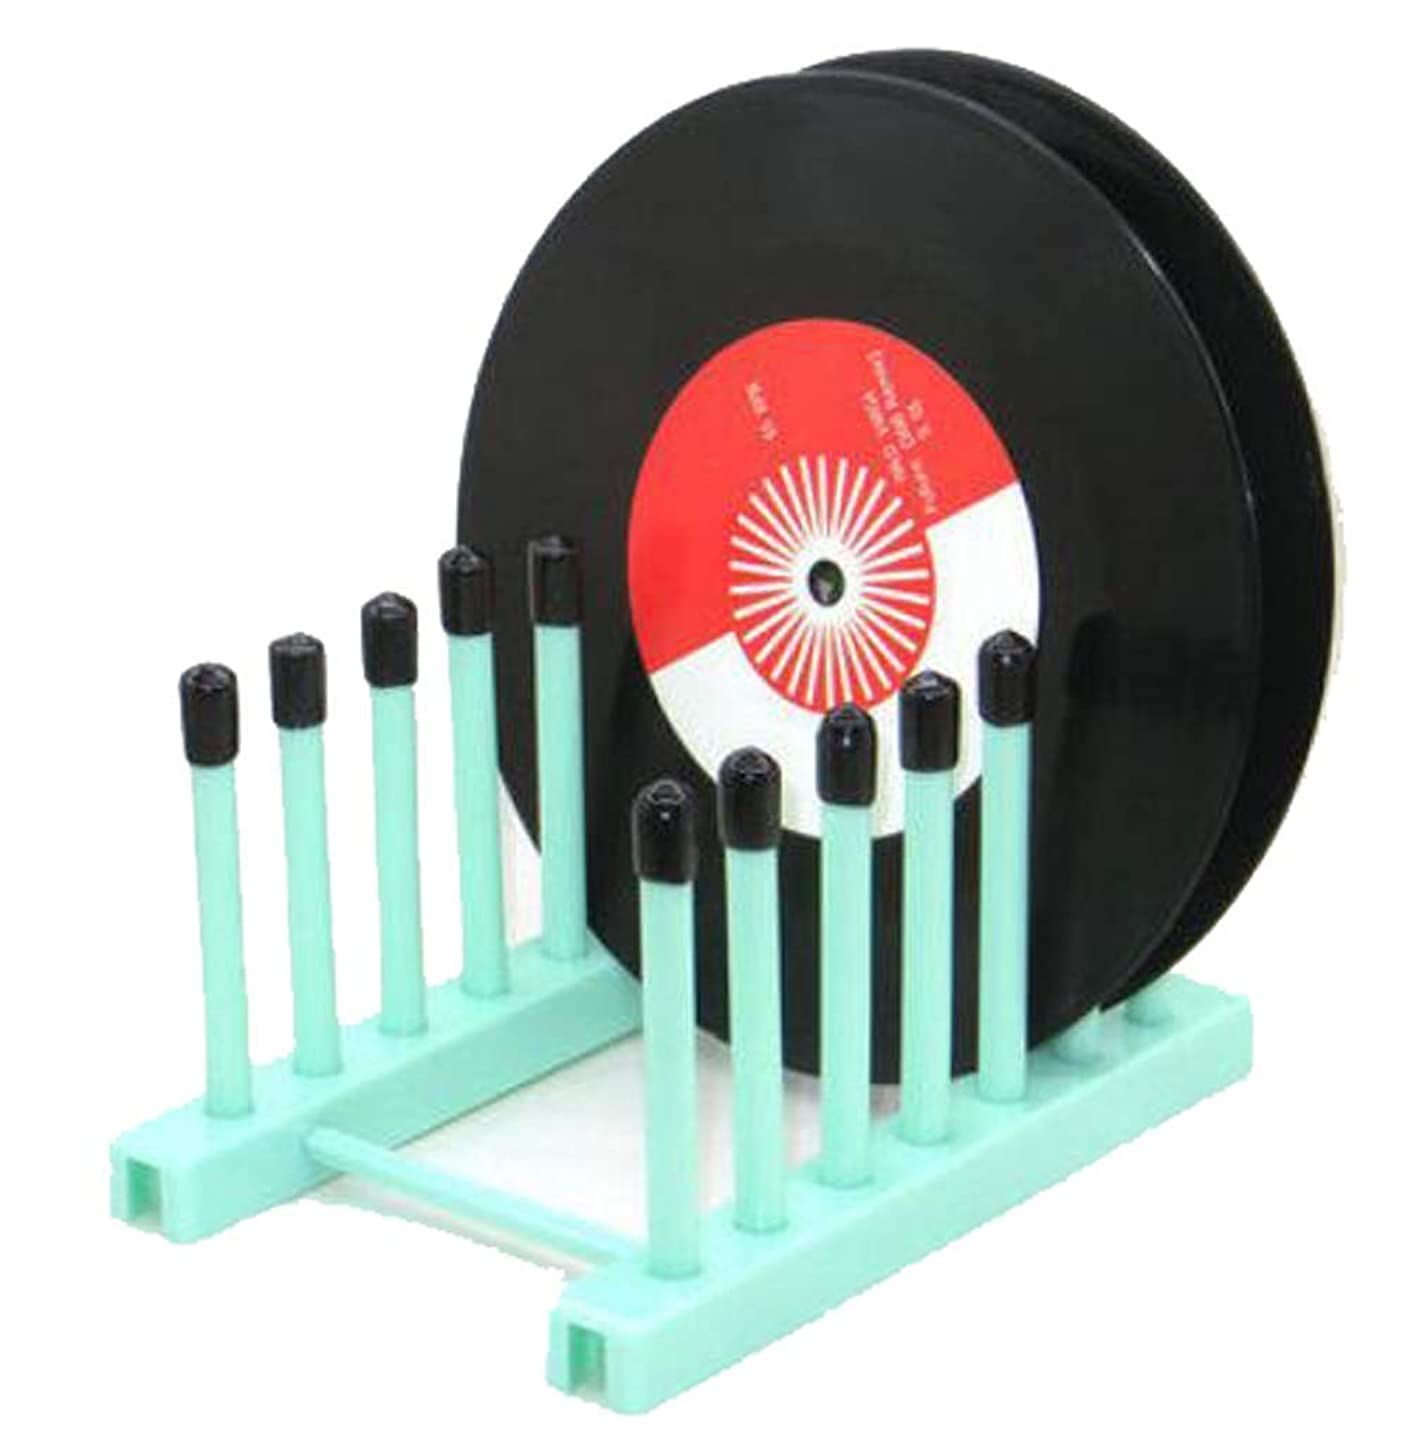 Vintage Vinyl Record Storage Holder Stand cleaning device drying rack Display - With Silicone top(Keep your records scratch free)– Holds up to 6 Album Lp's, - for 12